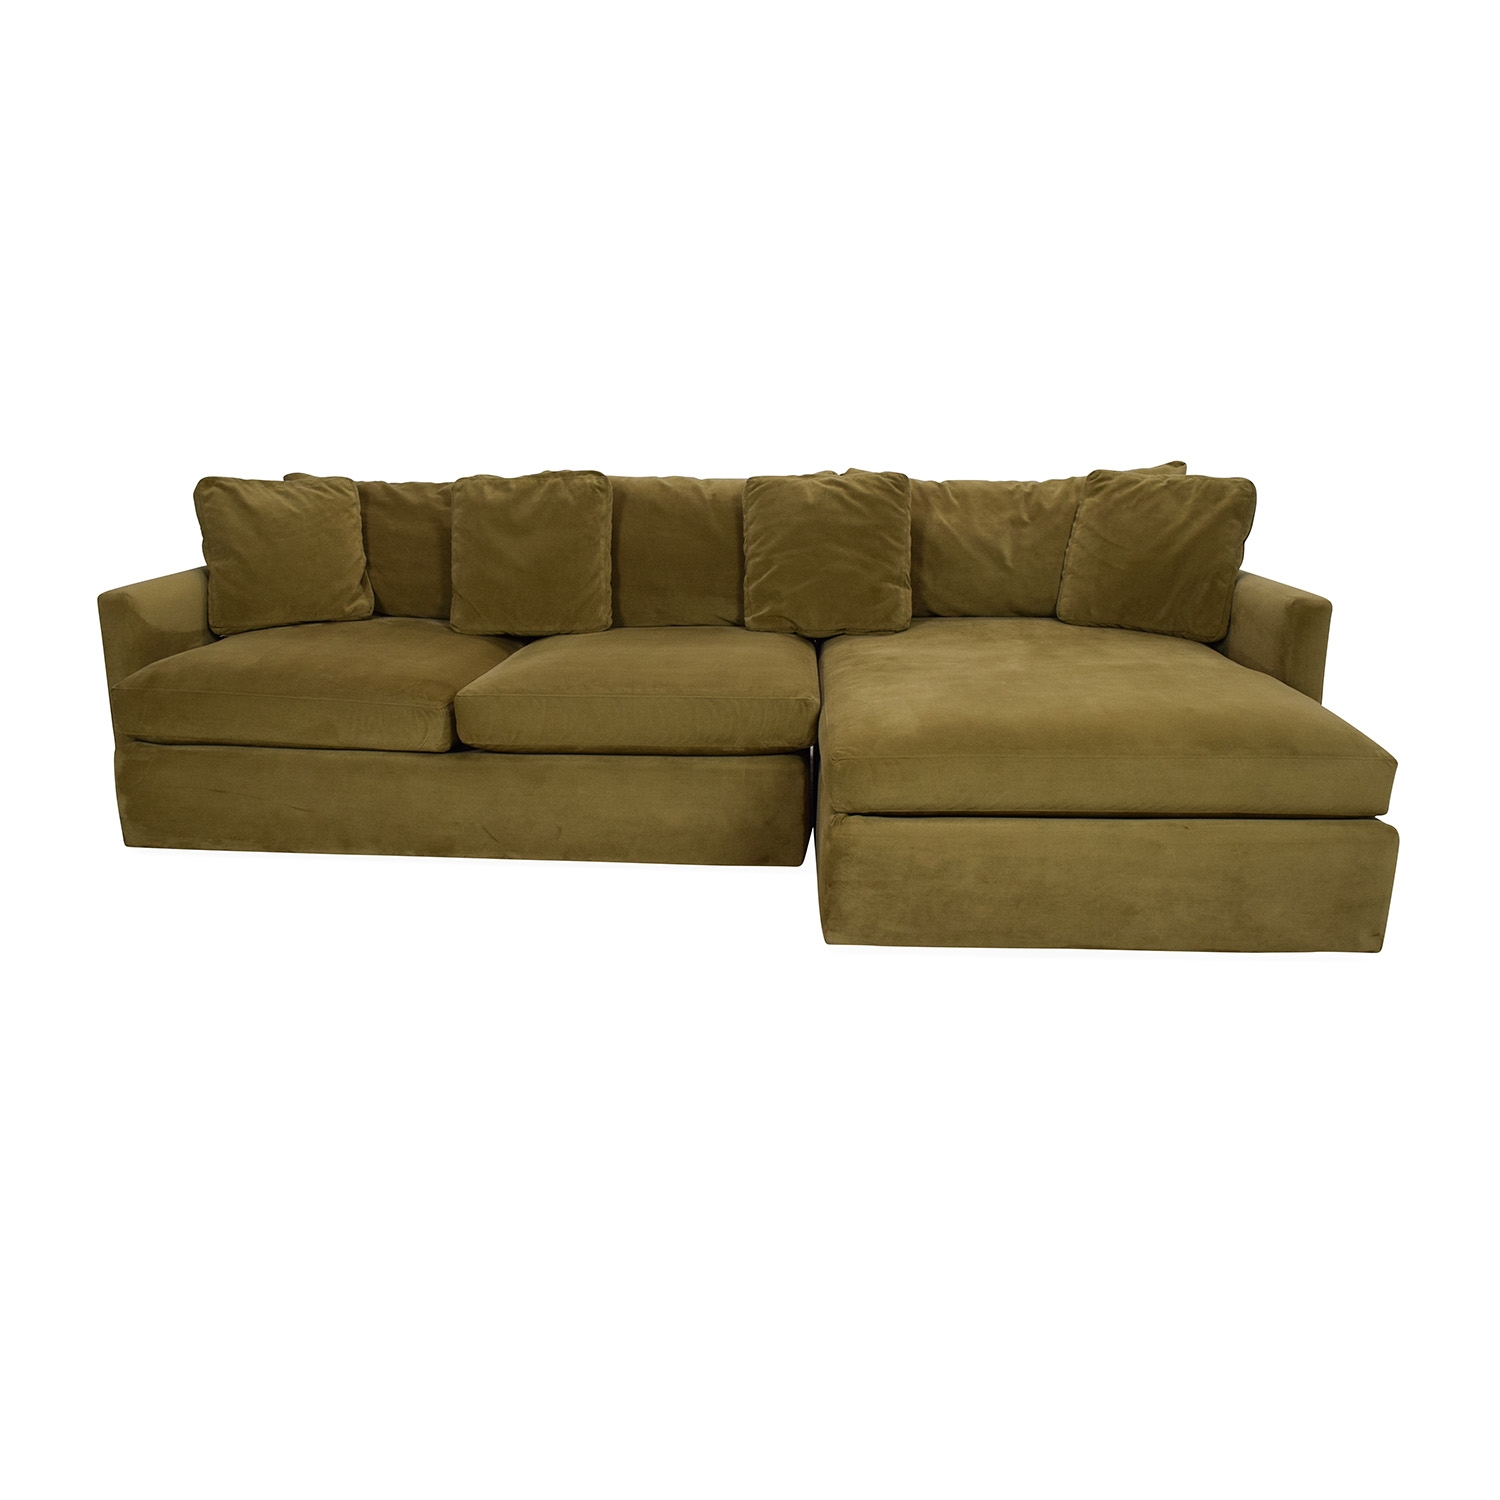 88 Off Hickory Chair Hickory Chair Foster L Shaped Beige With Crate And Barrel Sectional Sofas (View 12 of 12)